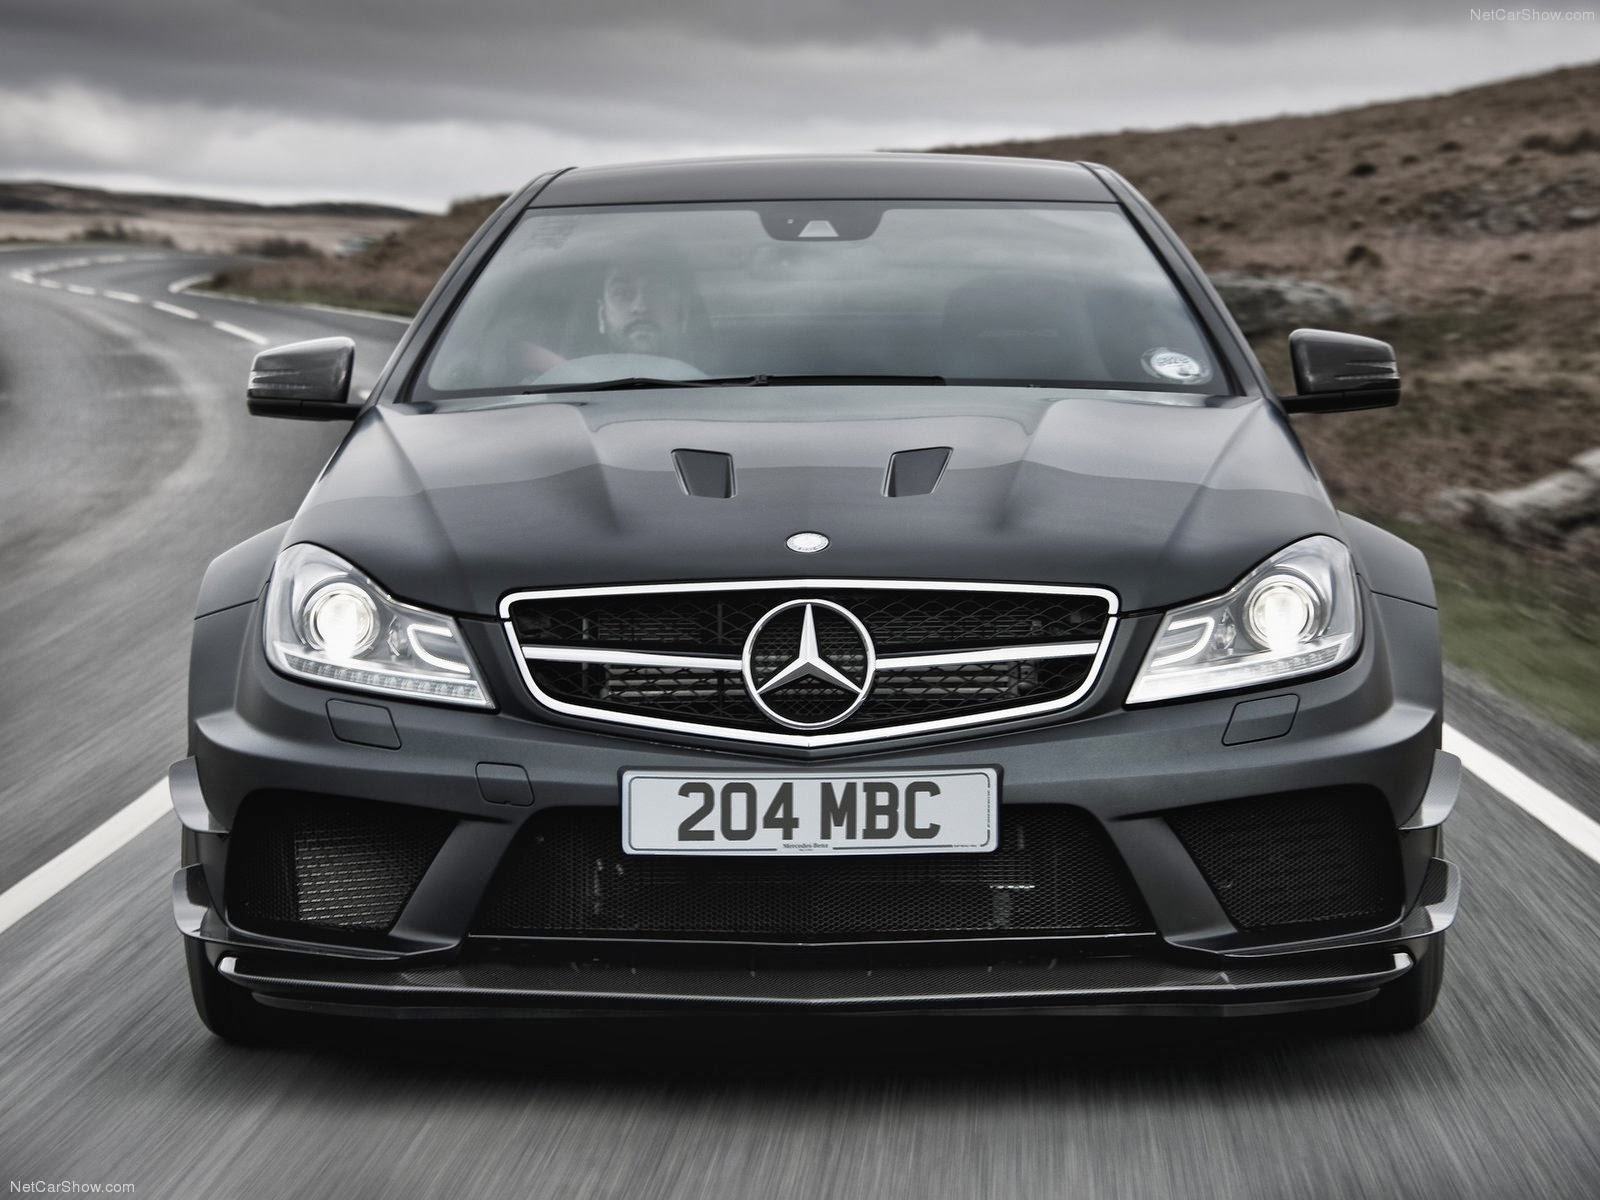 merceds benz c63 amg coupe black series takeyoshi images. Black Bedroom Furniture Sets. Home Design Ideas